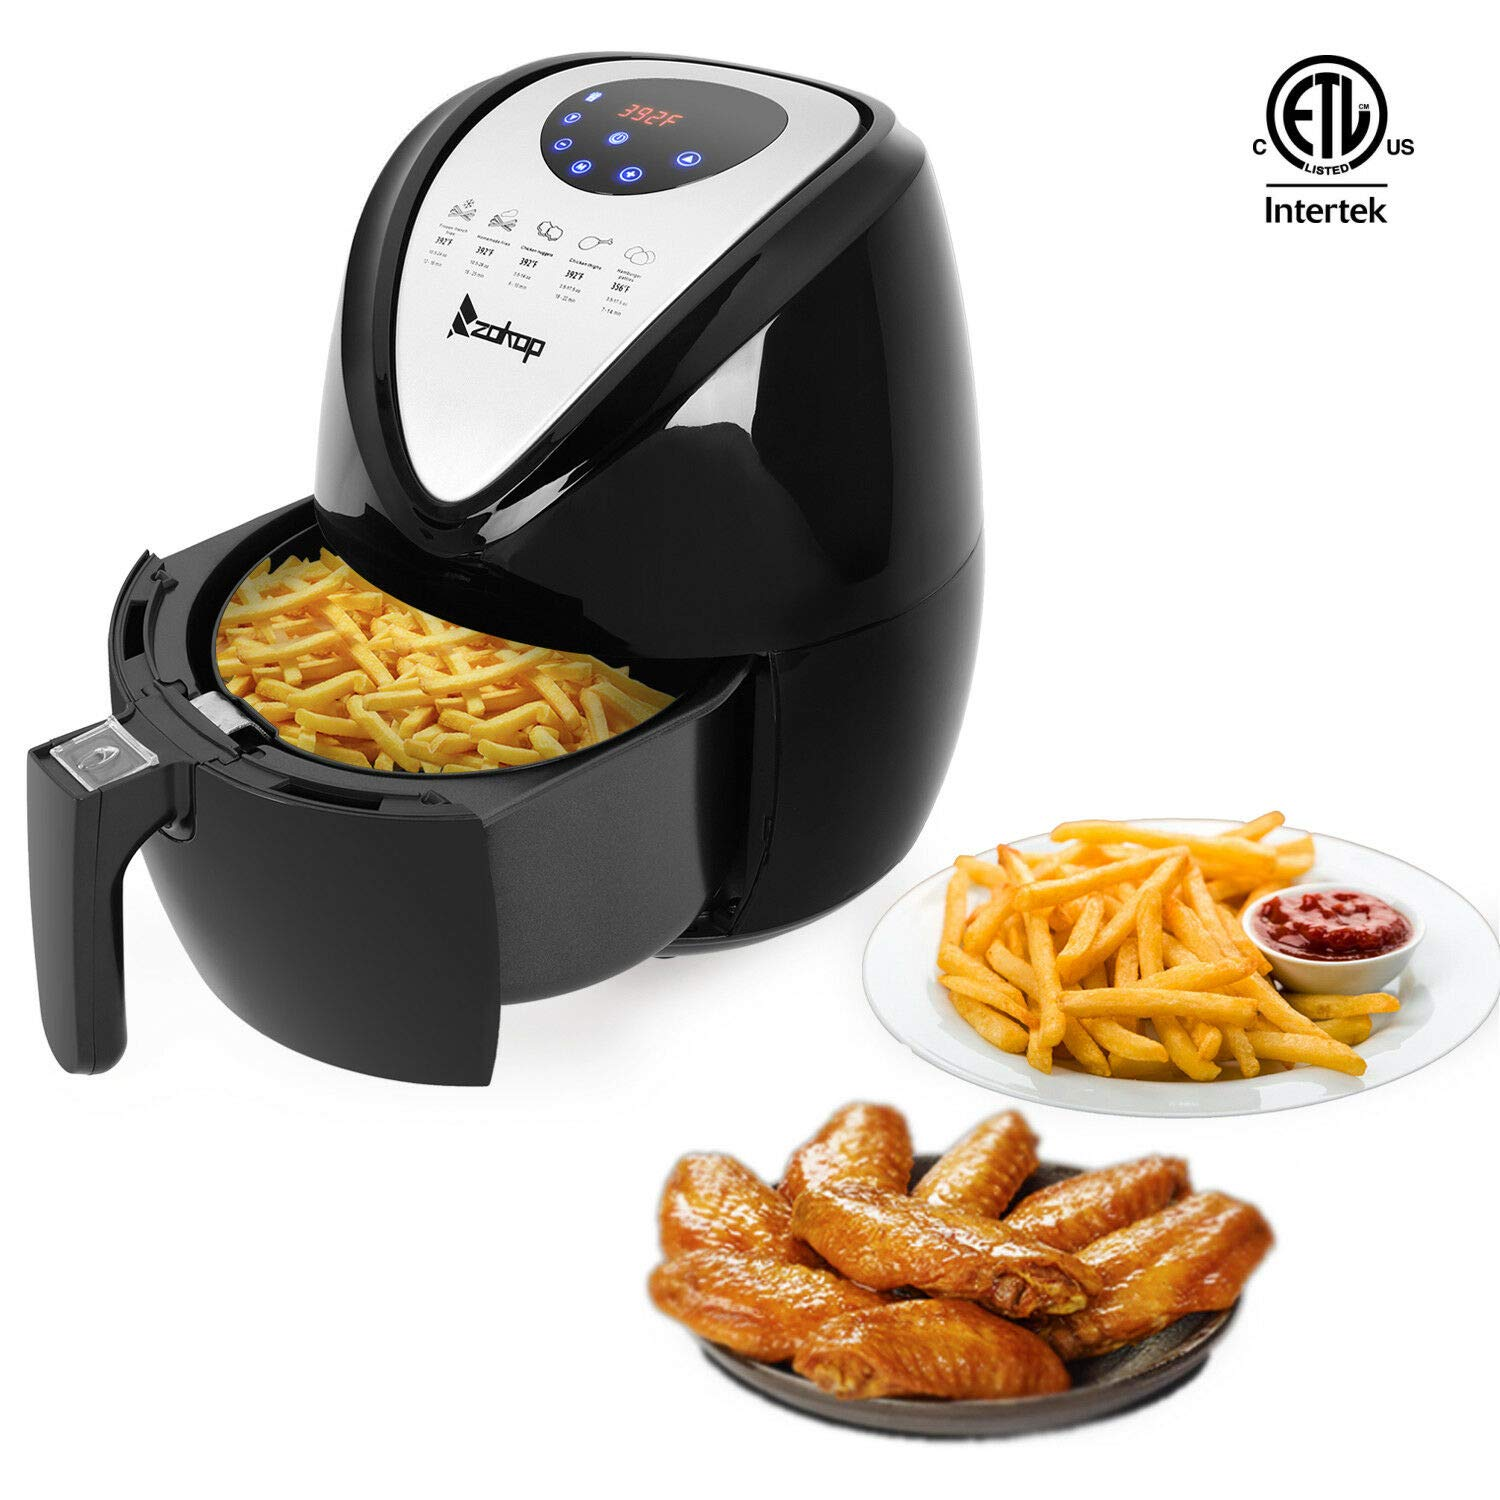 ARB Market 1500W LCD Electric Air Fryer 3.5L Best Price User Friendly,Electric Air Fryer Convection Oven Cooker With Temperature Control, Non-Stick, Temp Control, Timer, Removable Fryer Basket (Black)